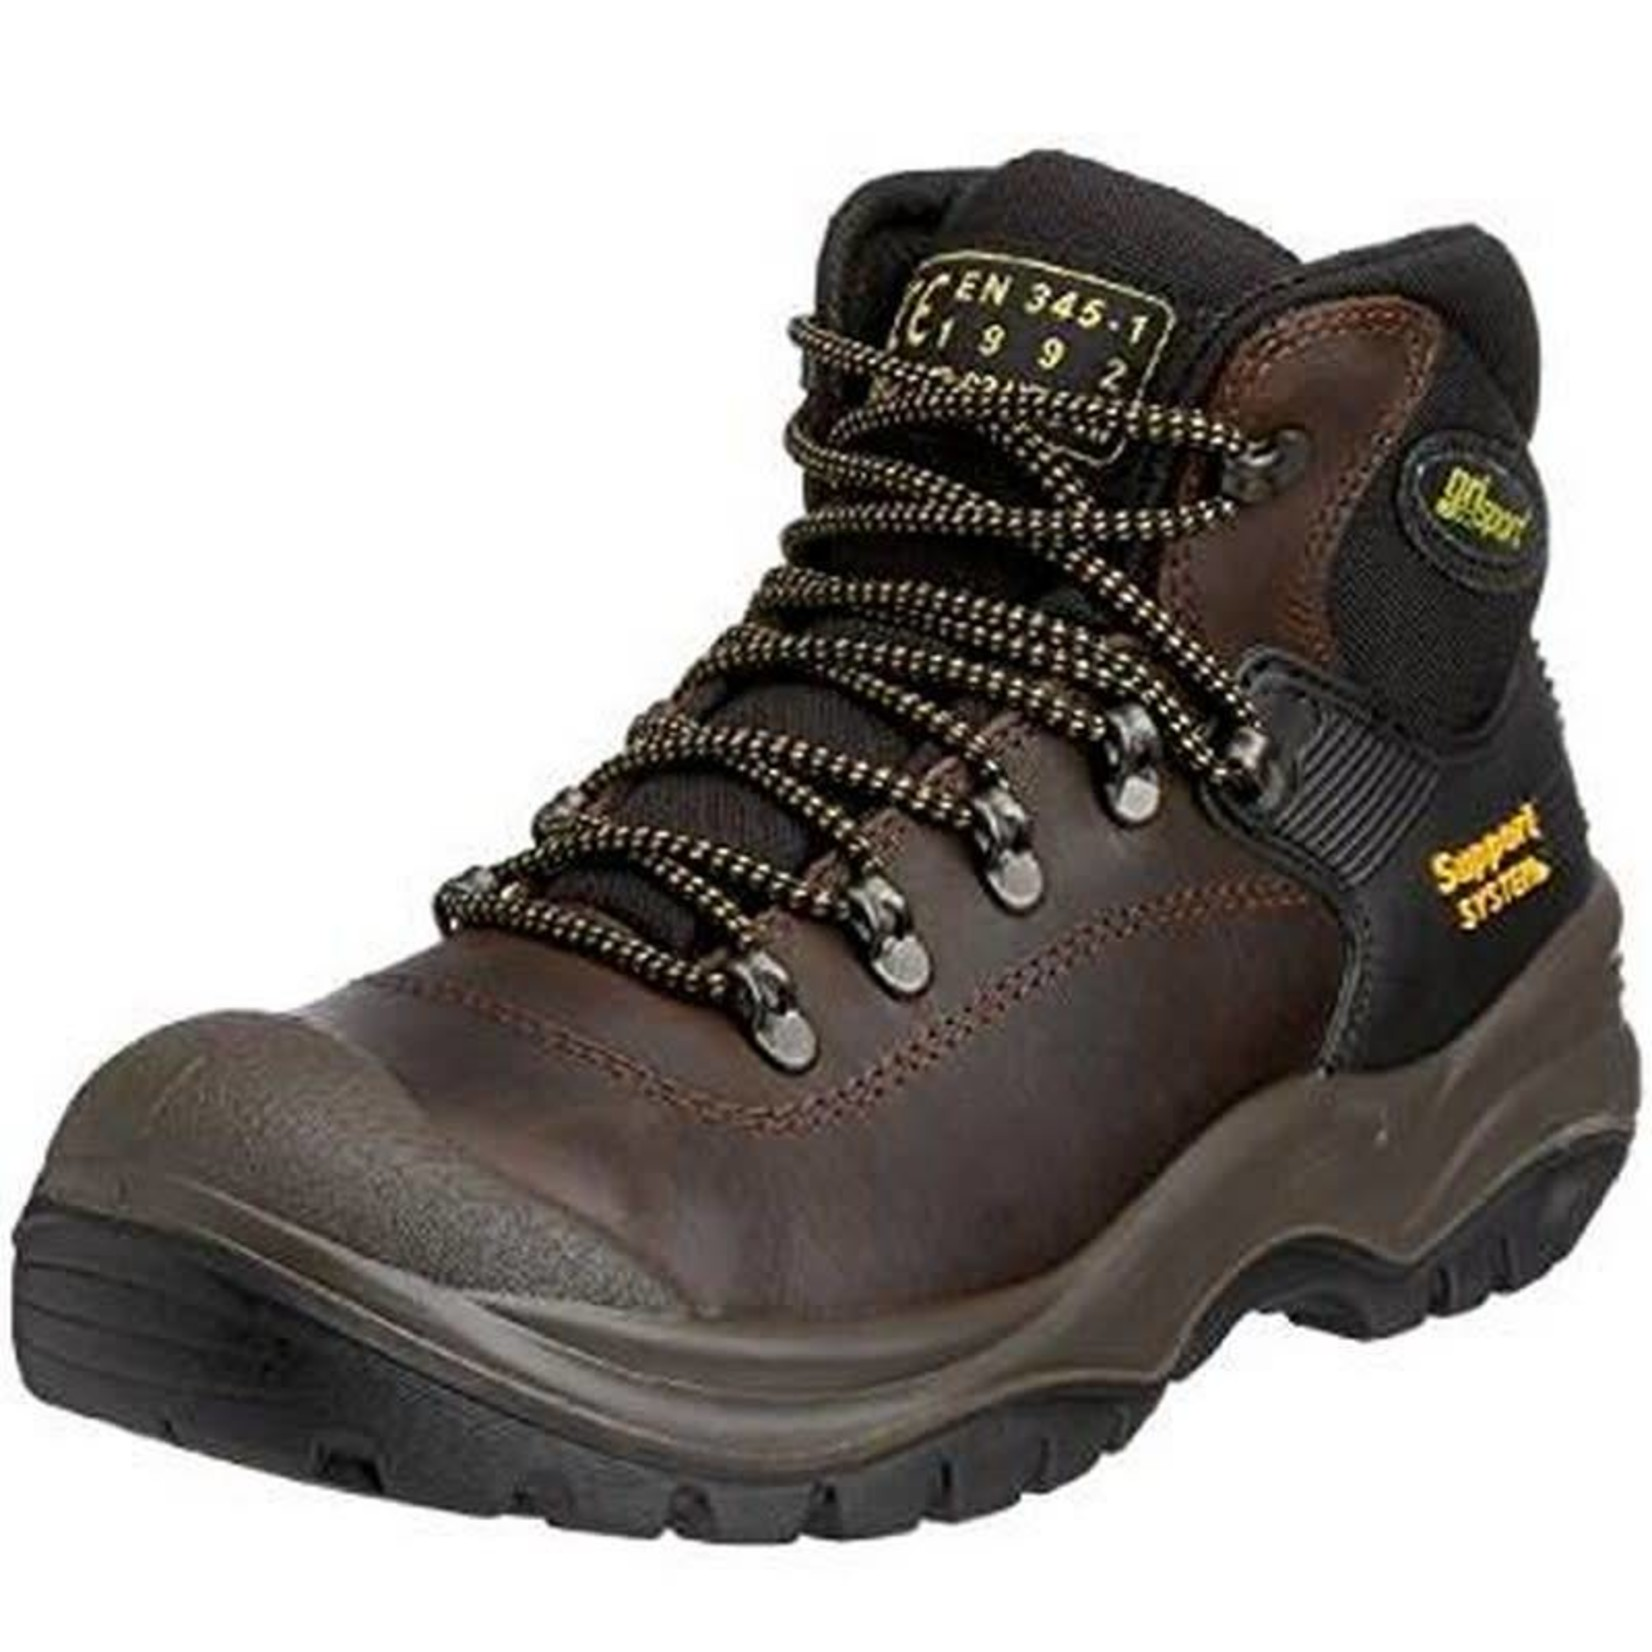 CONTRACTOR BOOT STEEL TOE TOECAP SAFETY BOOTS SIZE 46 (12) BROWN